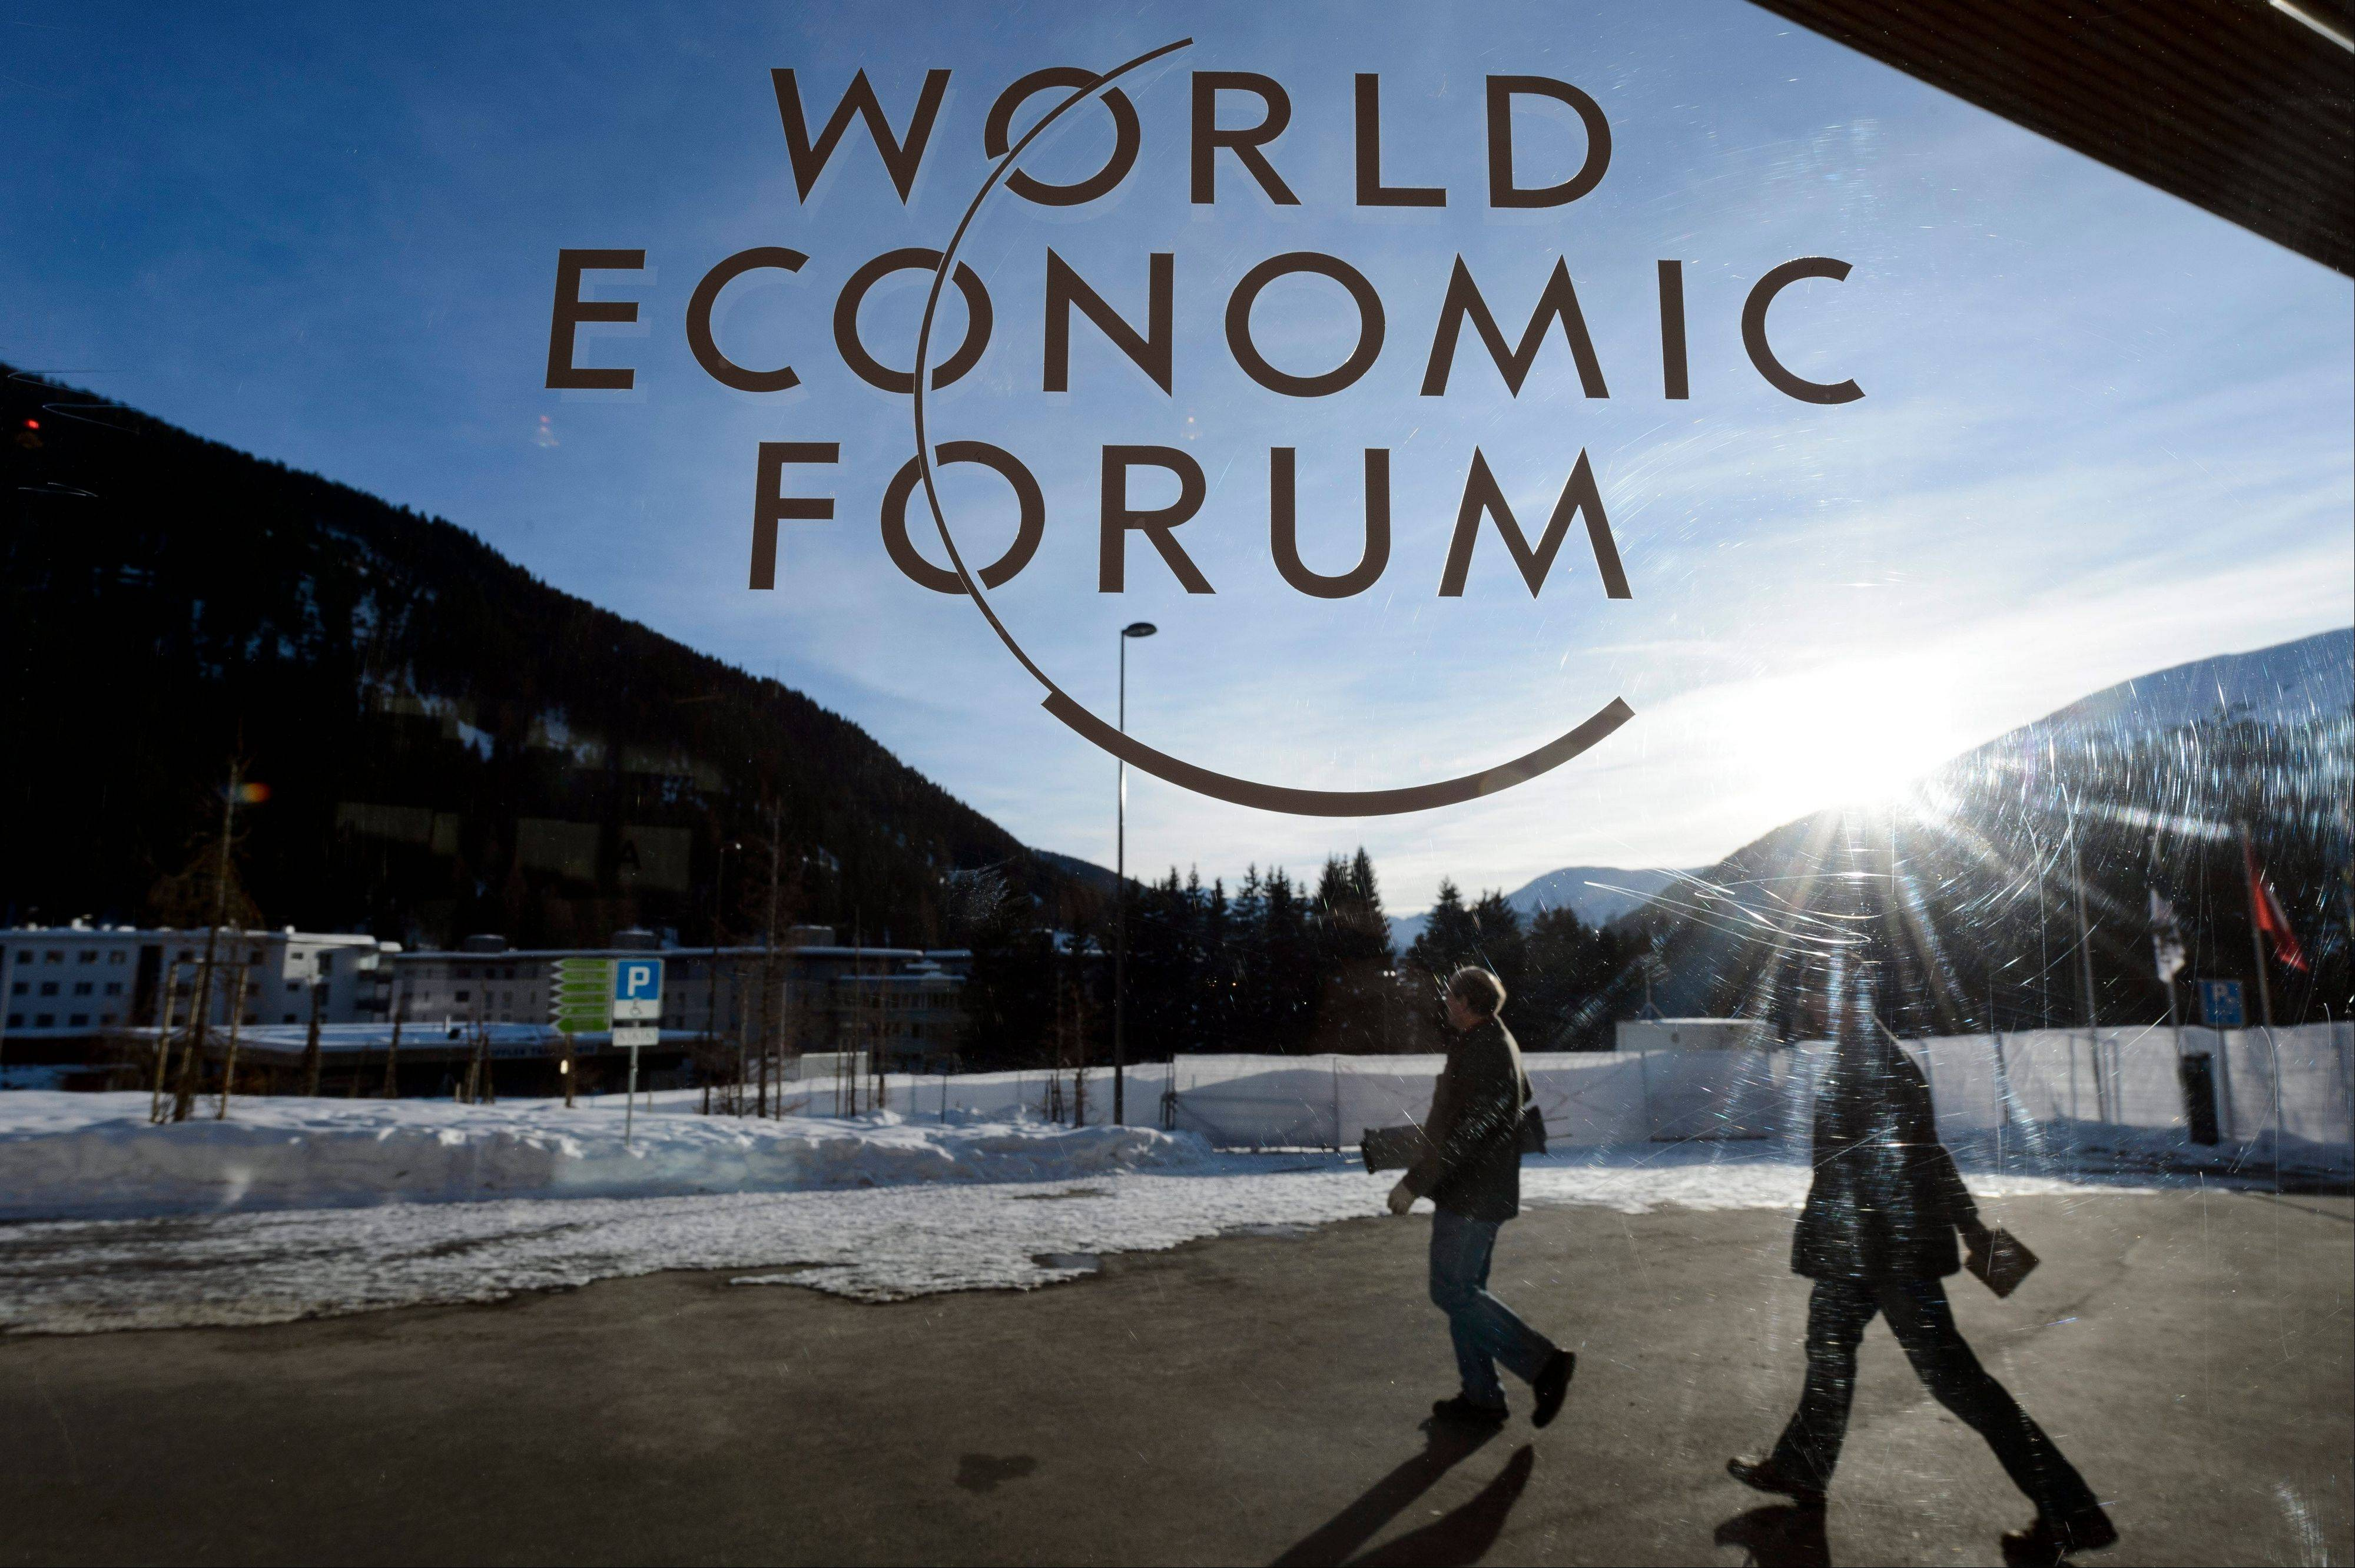 Participants leave the Congress Center the last day of the 43rd Annual Meeting of the World Economic Forum, WEF, in Davos, Switzerland.